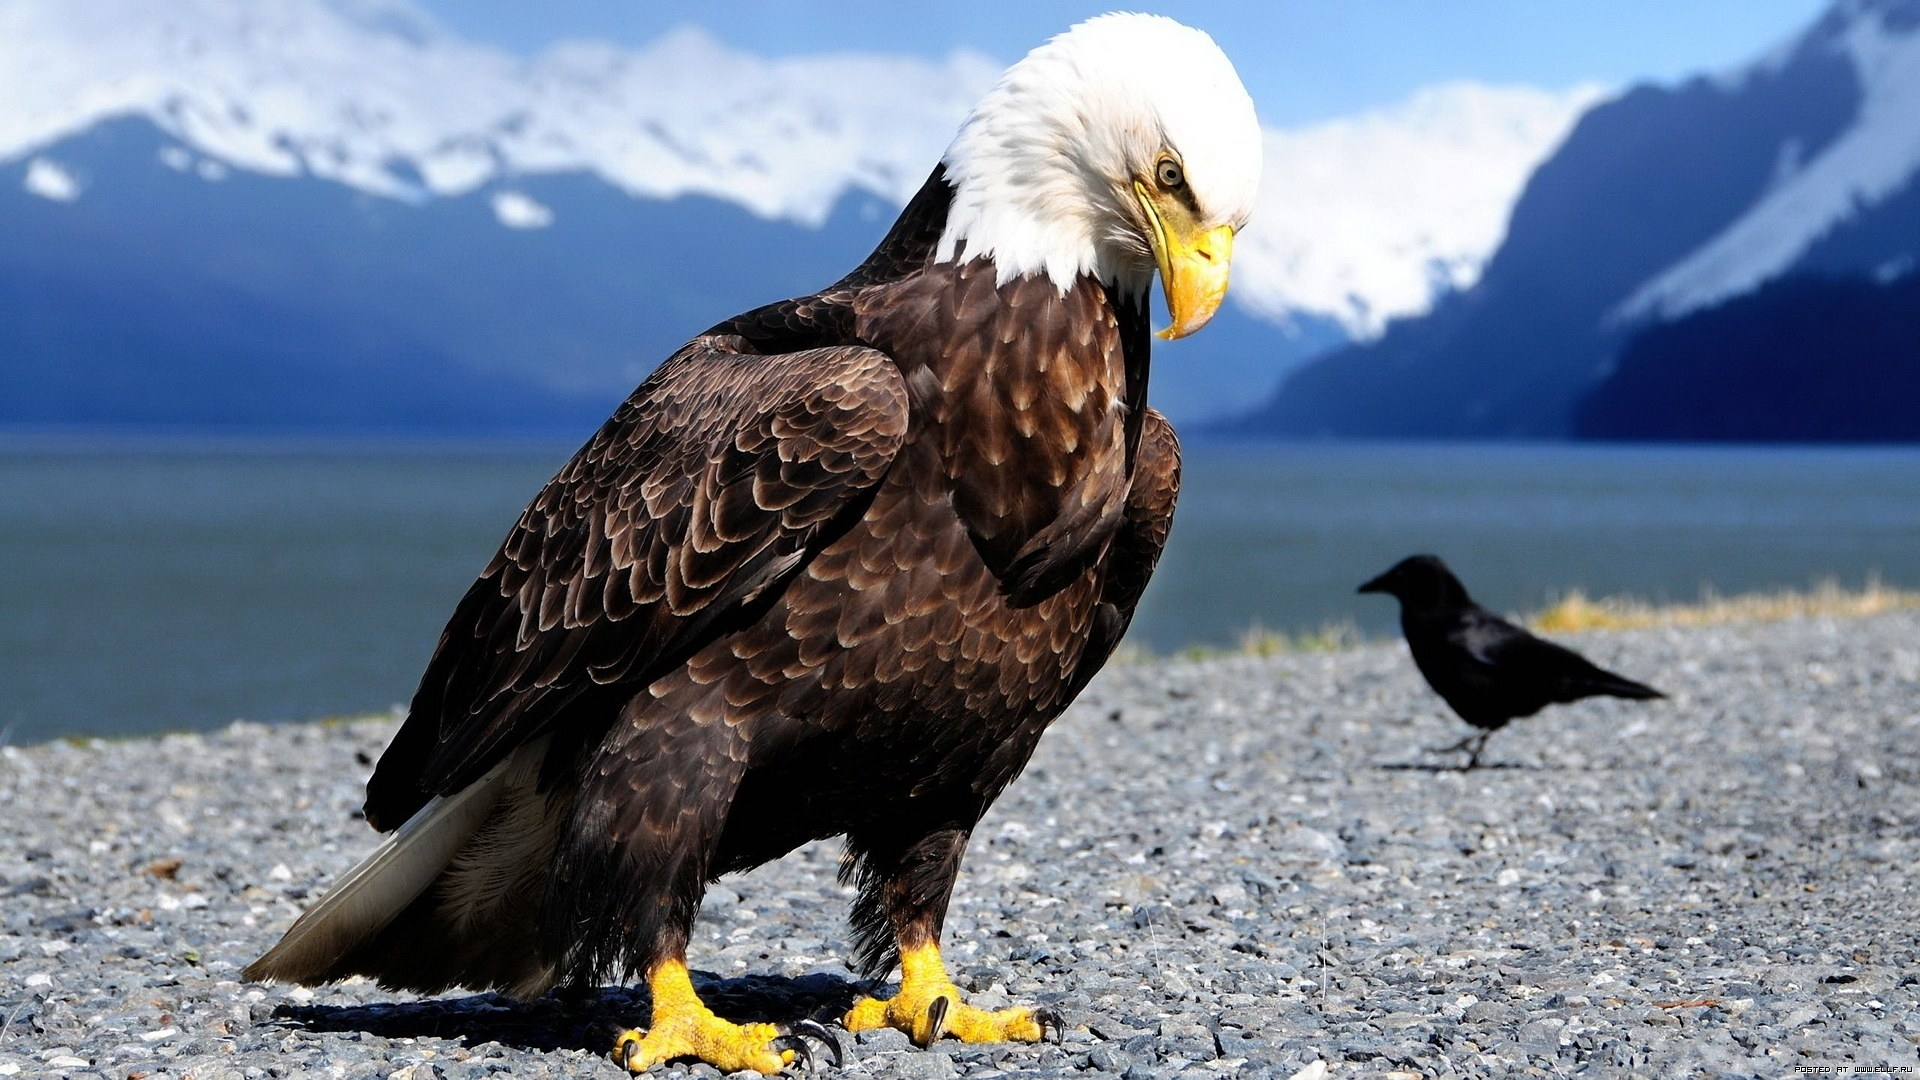 50272 download wallpaper Animals, Birds, Eagles screensavers and pictures for free